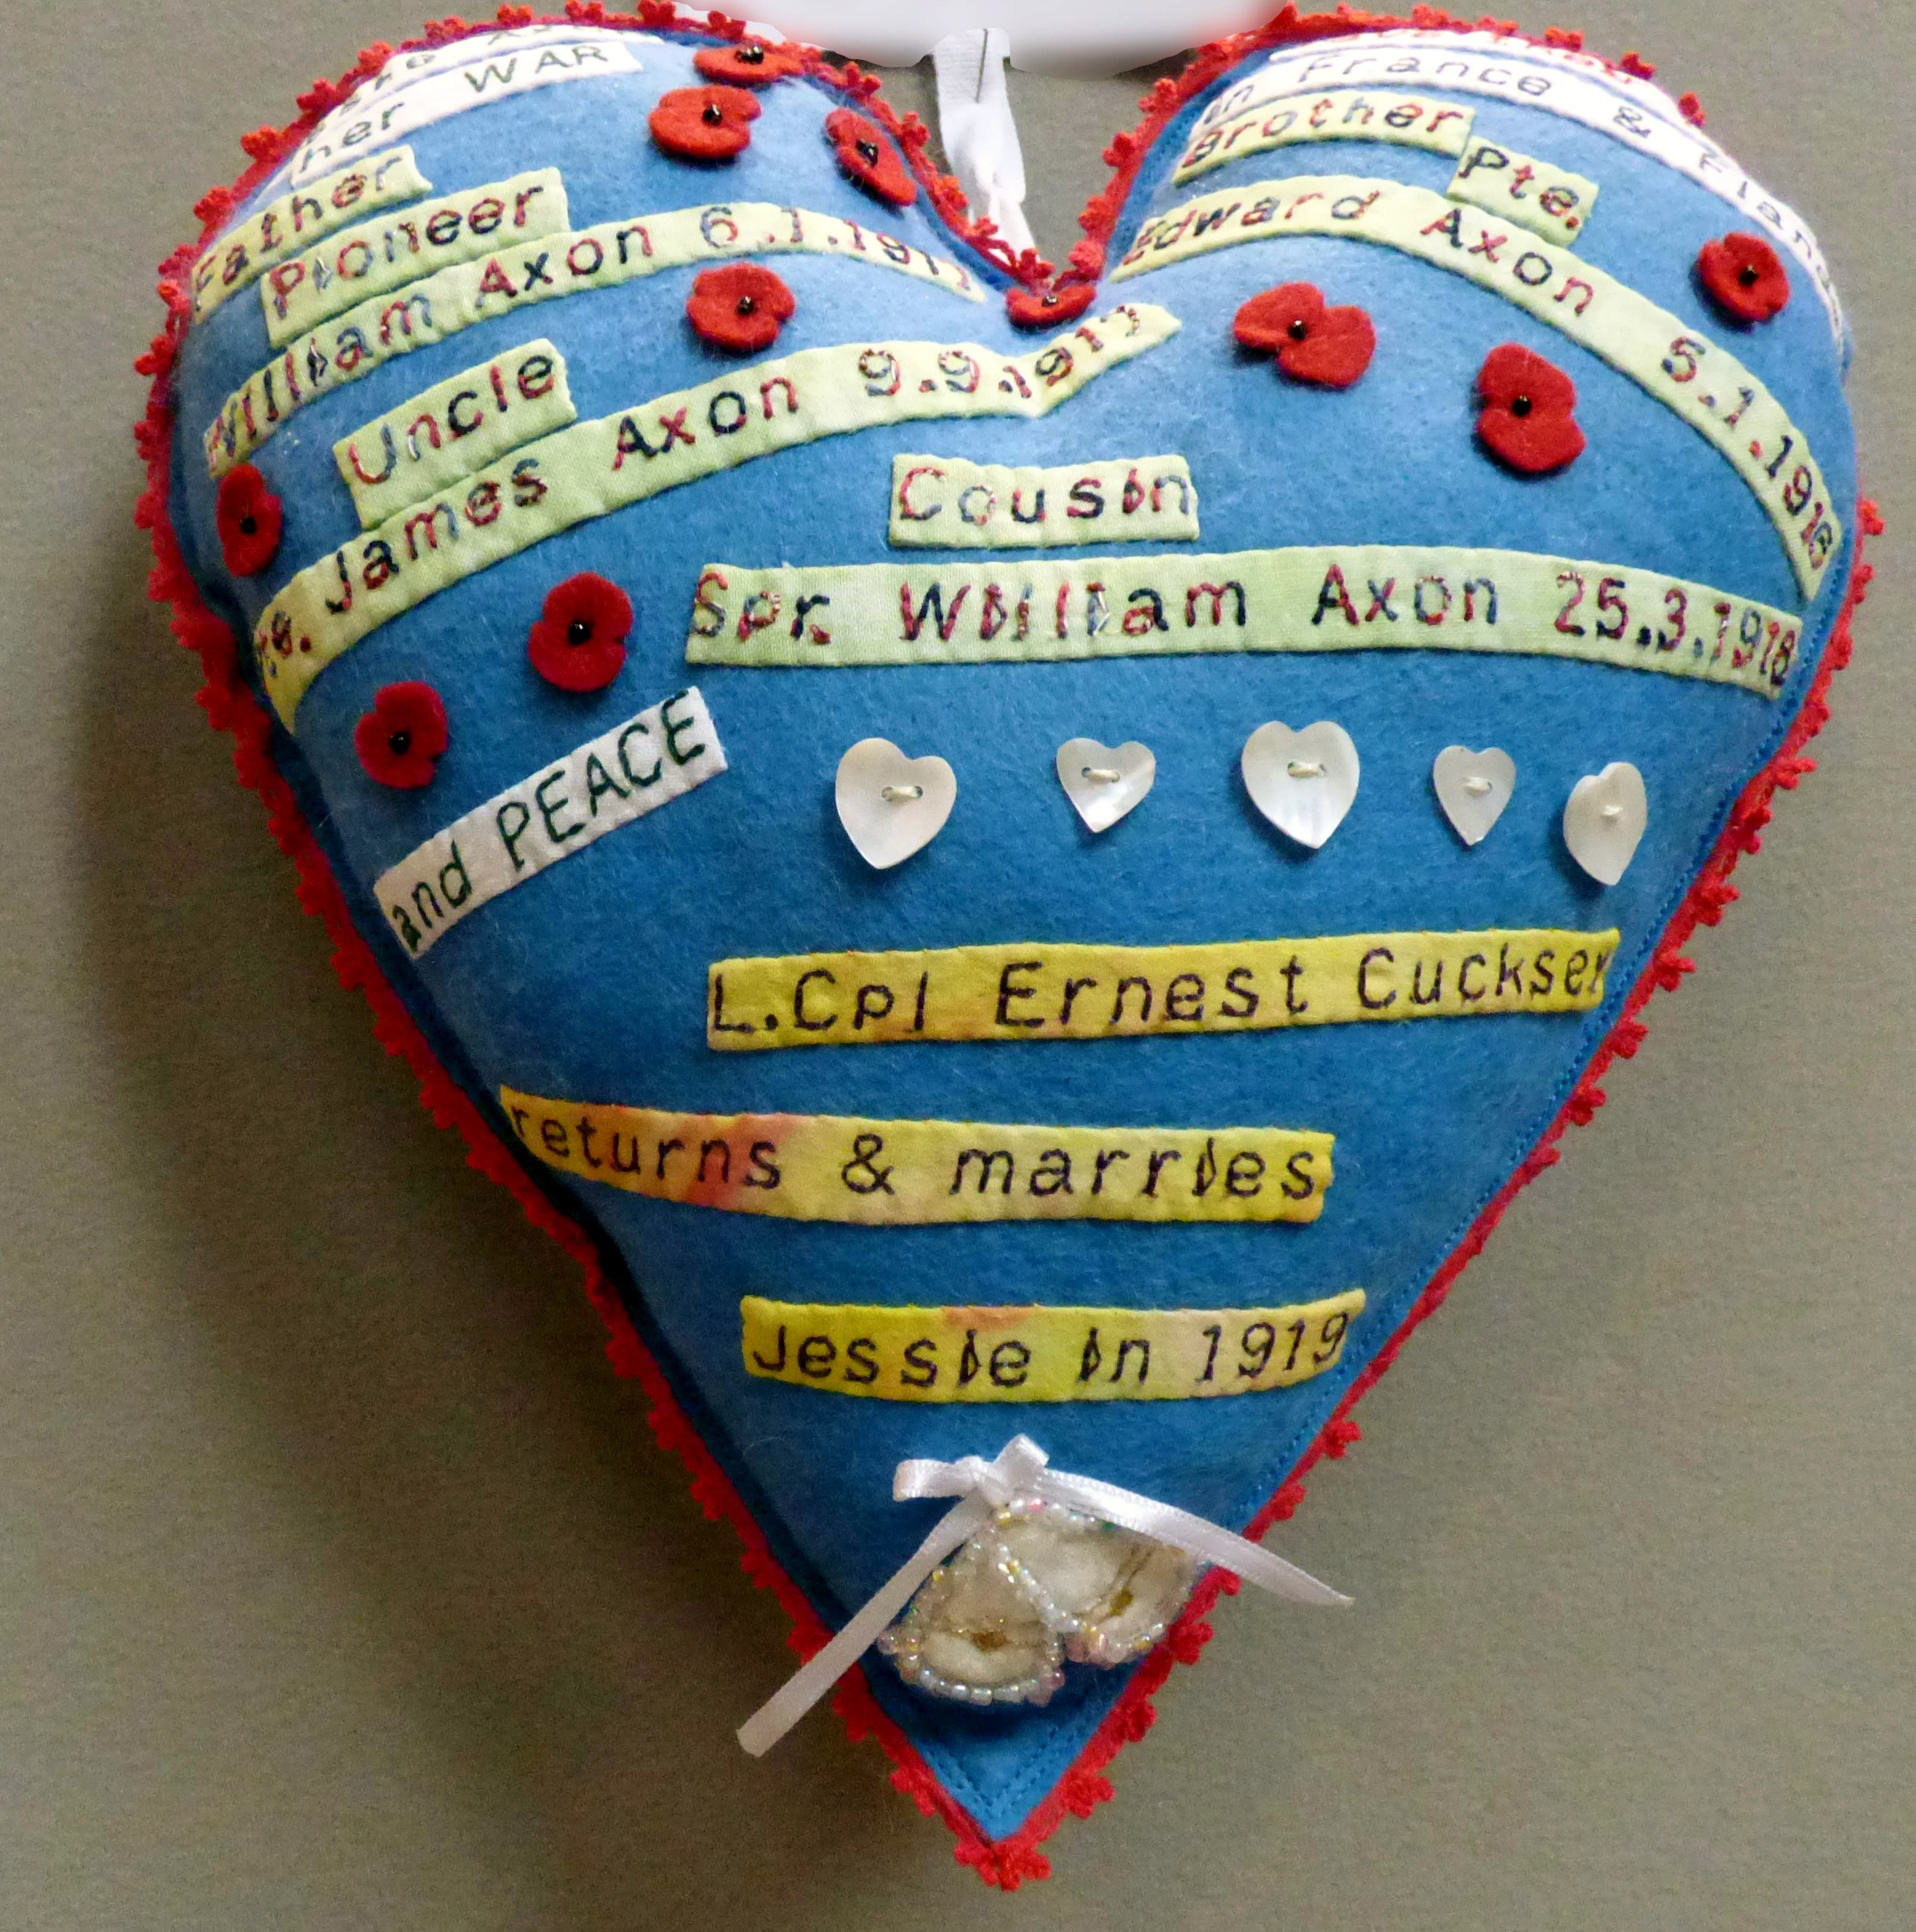 JESSIE AXON'S WAR AND PEACE by Edwina Winter, in memory of my paternal grandmother, 100 Hearts exhibition, Liverpool Cathedral, Sept 2018